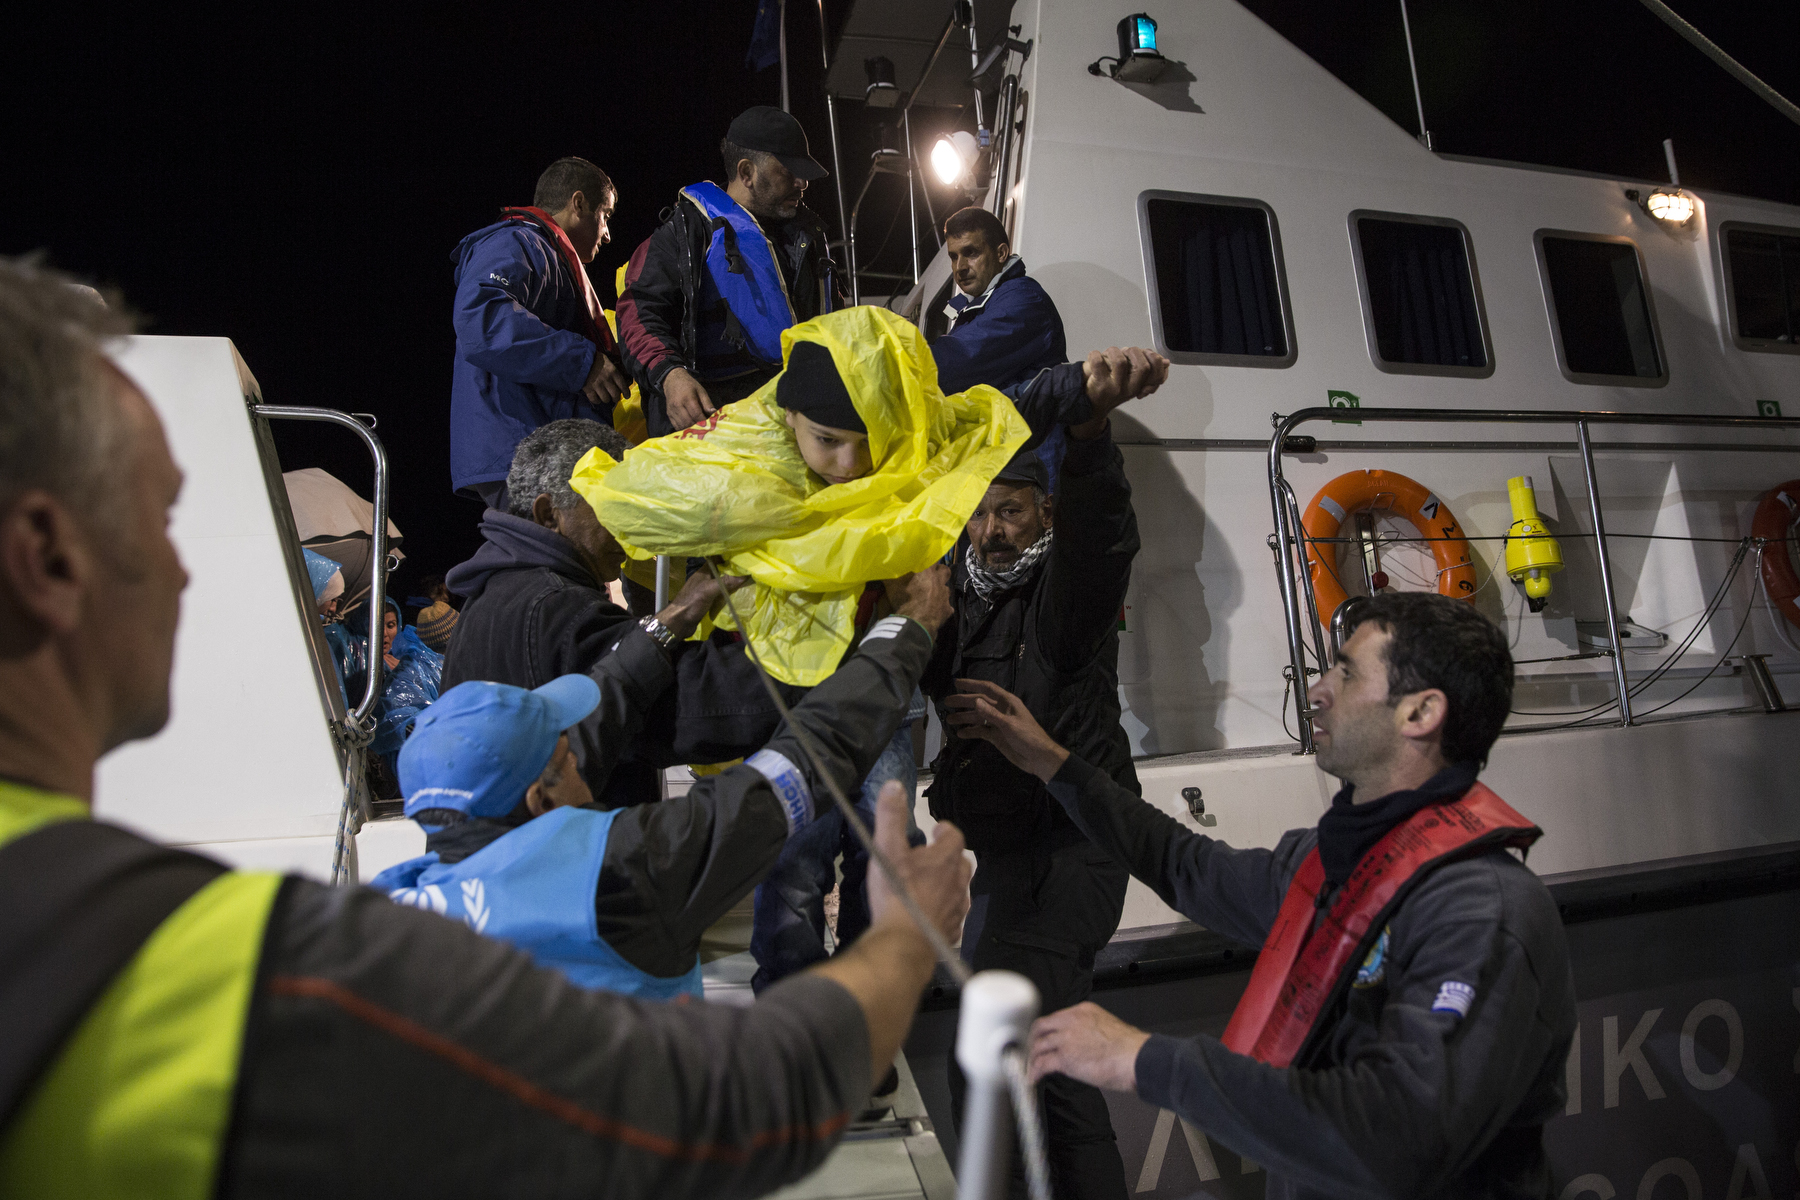 LESBOS, GREECE - OCTOBER 29: A boy is rescued by Greek Coast guard after a large wooden boat capsized. Colder weather and rough seas continue to cause deaths at sea as thousands travel in overcrowded small rafts. According to the IOM, an estimated 100,000 people landed in Greece, an average of almost 4,500 per day in late October and November. Nearly all of those entering Greece on a boat from Turkey are from the war zones of Syria, Iraq and Afghanistan. (Photo by Paula Bronstein)